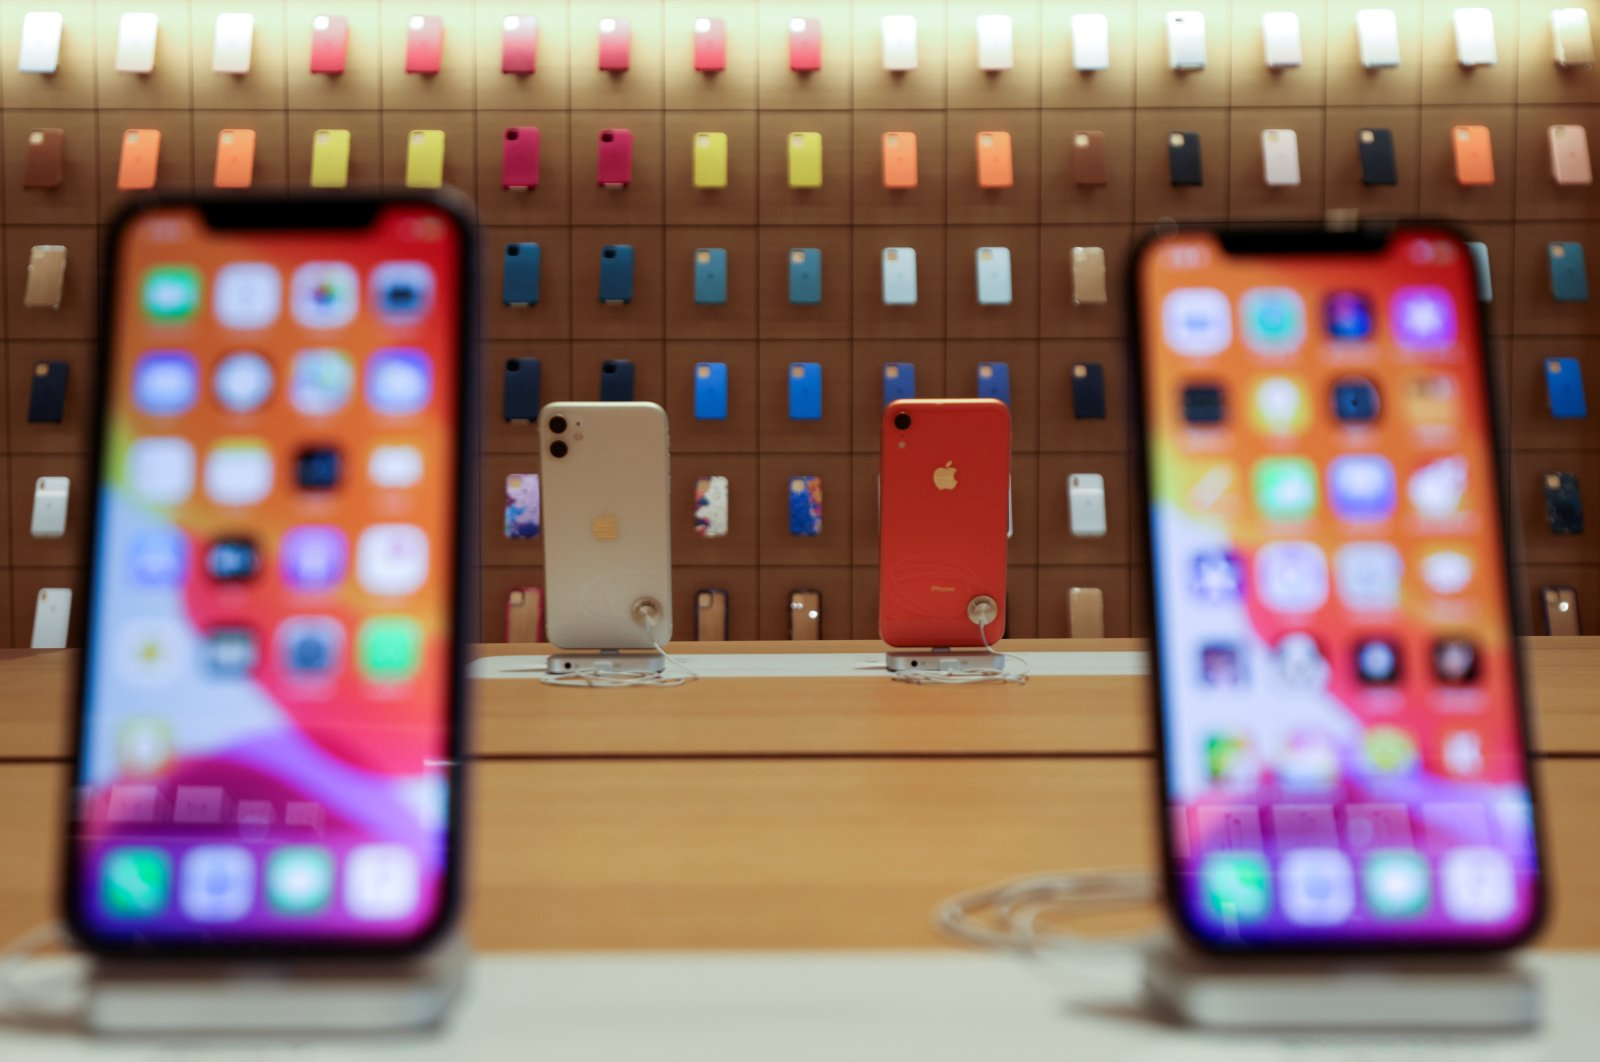 iPhones are displayed at the upcoming Apple Marina Bay Sands store in Singapore, Sept. 8, 2020. (Reuters Photo)